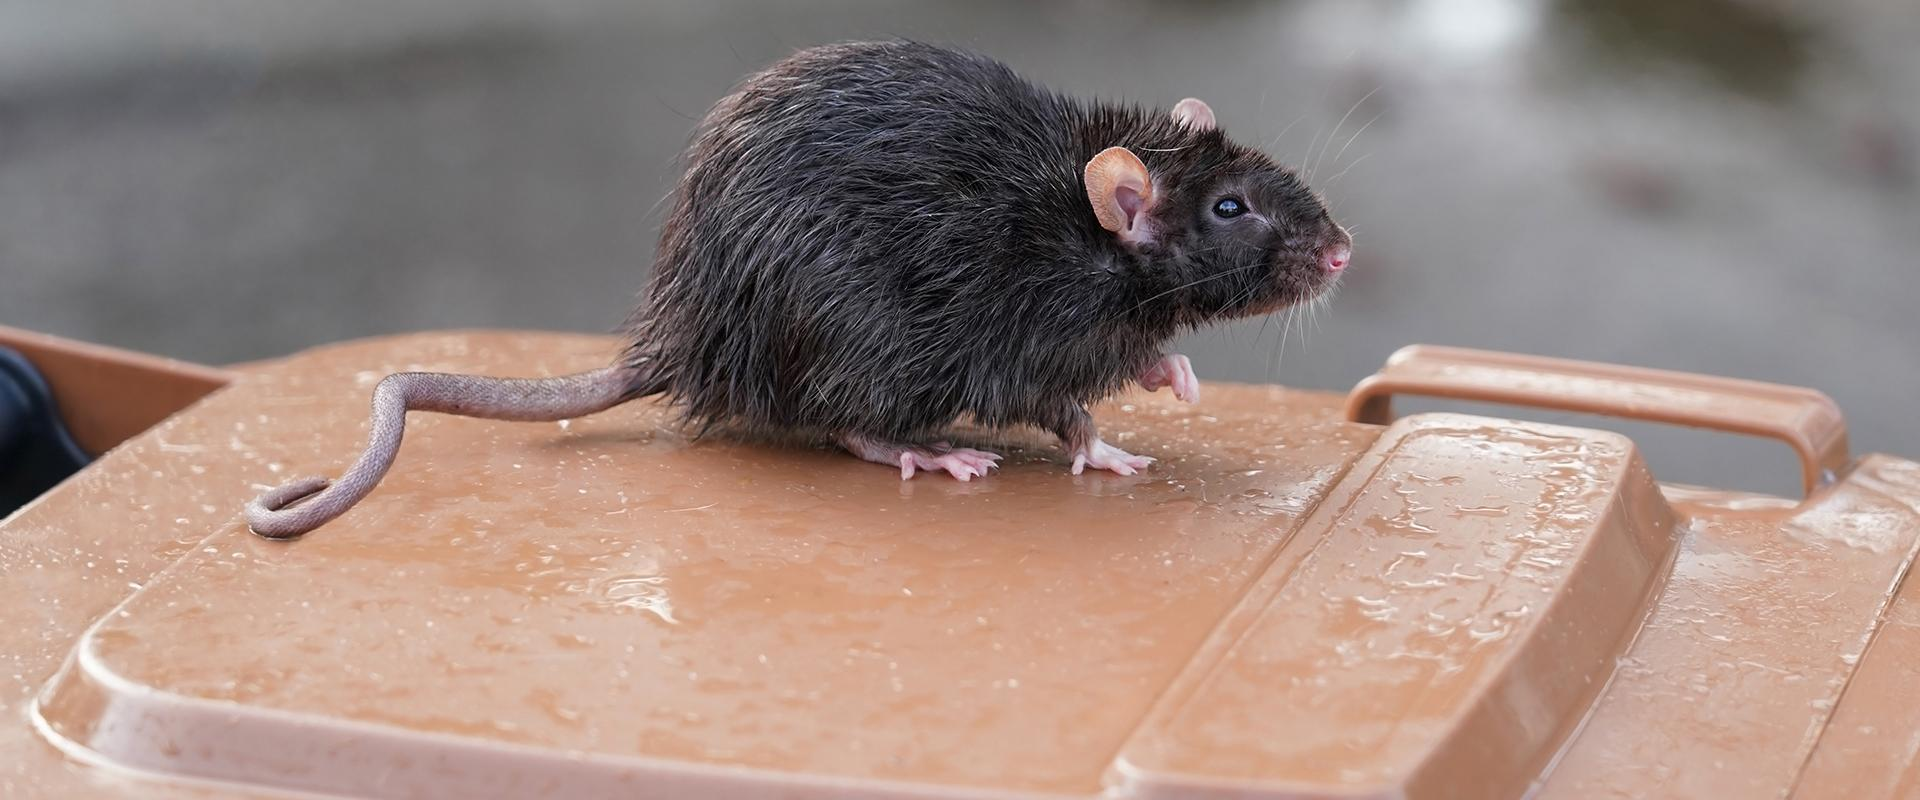 rat on trash bin lid